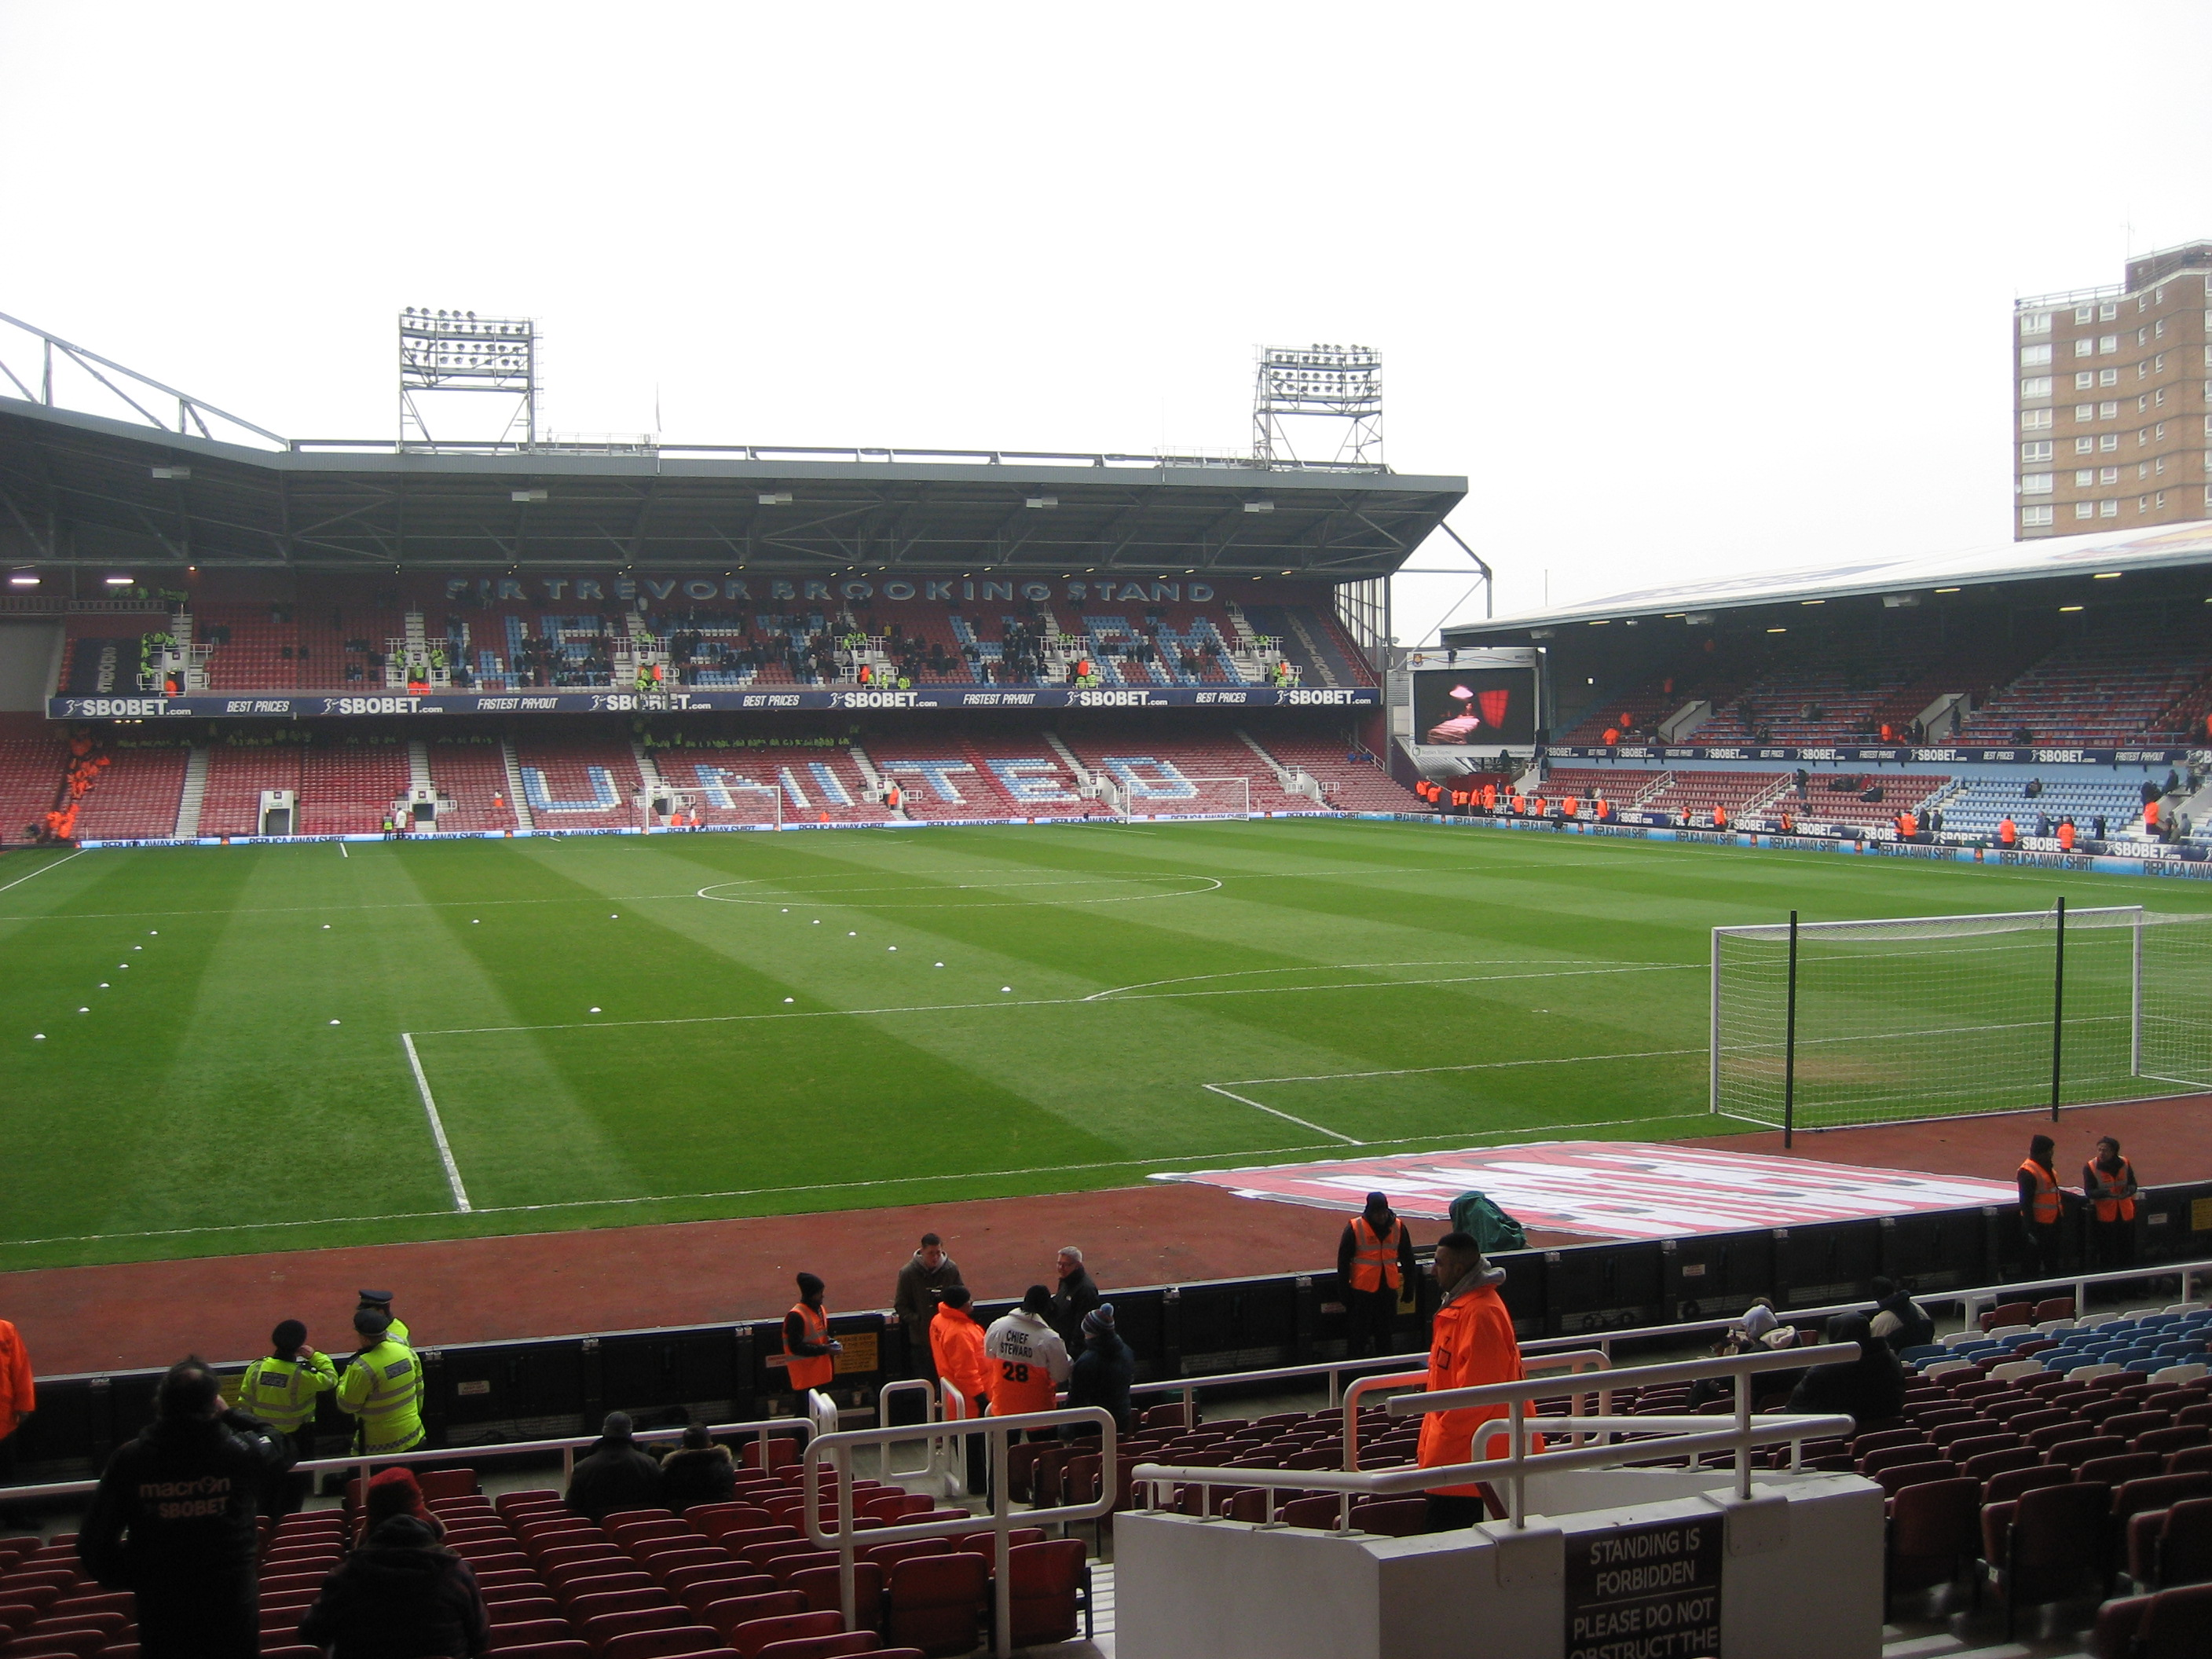 The pitch at Upton Park before the match